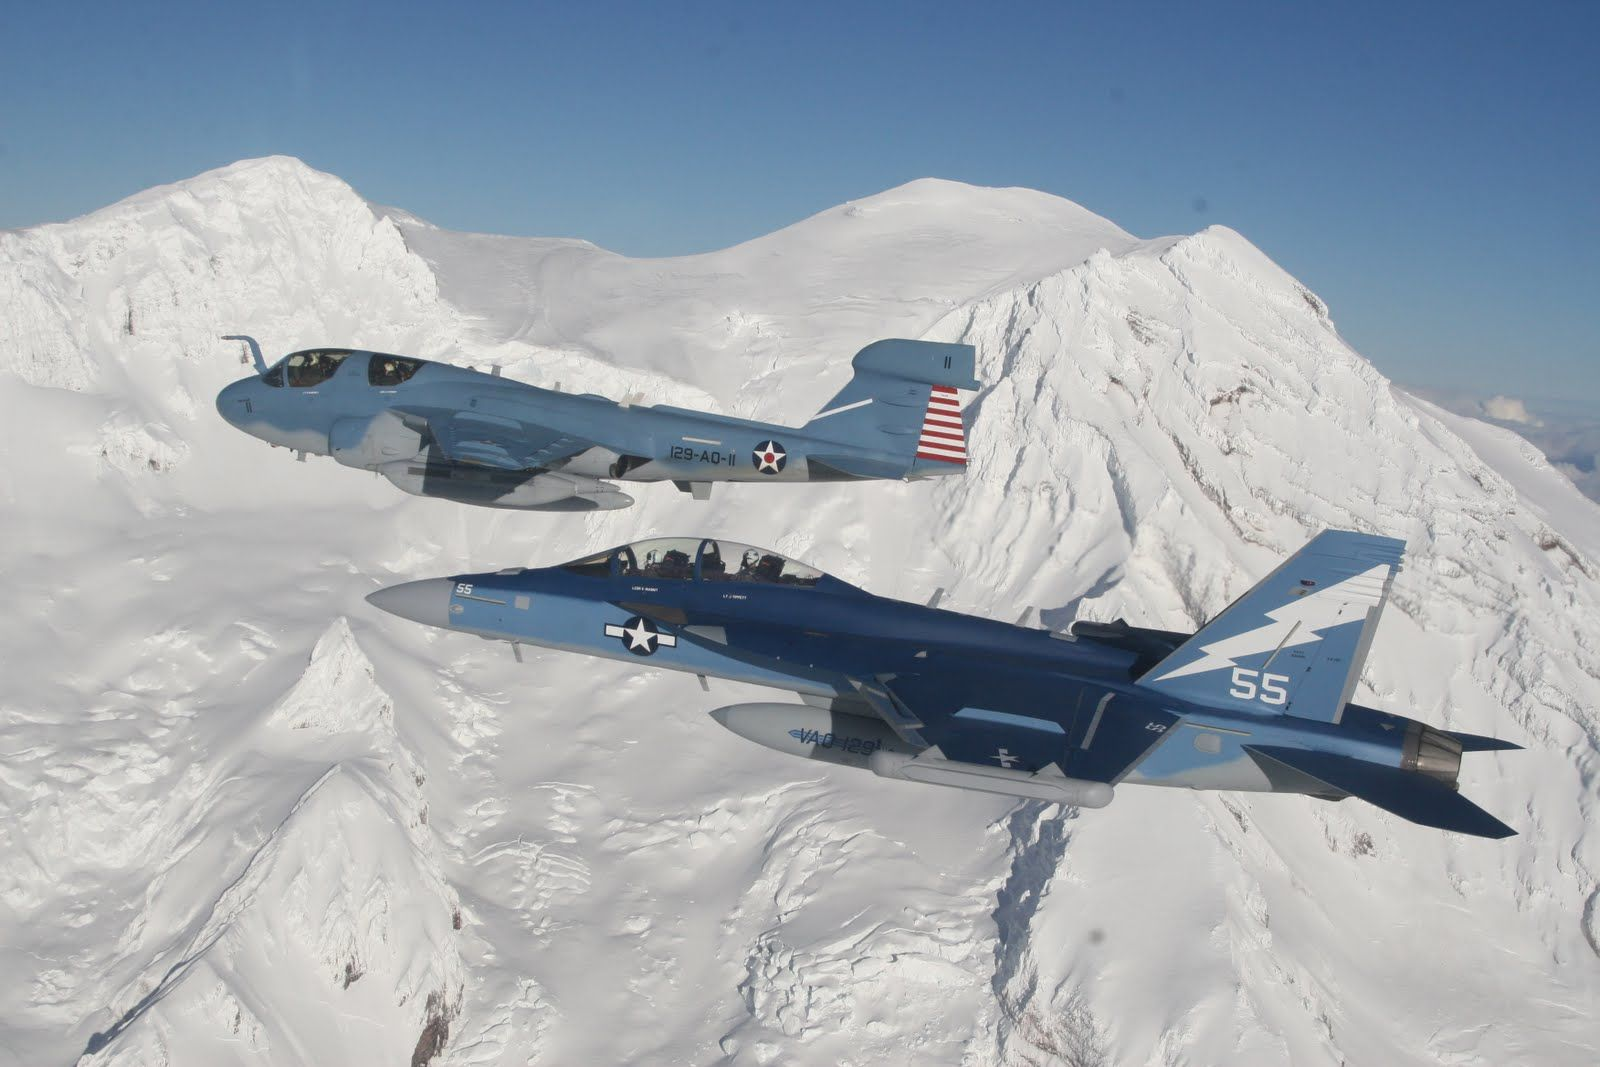 """E/A6B Prowler and E/A18G Growler from the """"Vikings"""" of"""